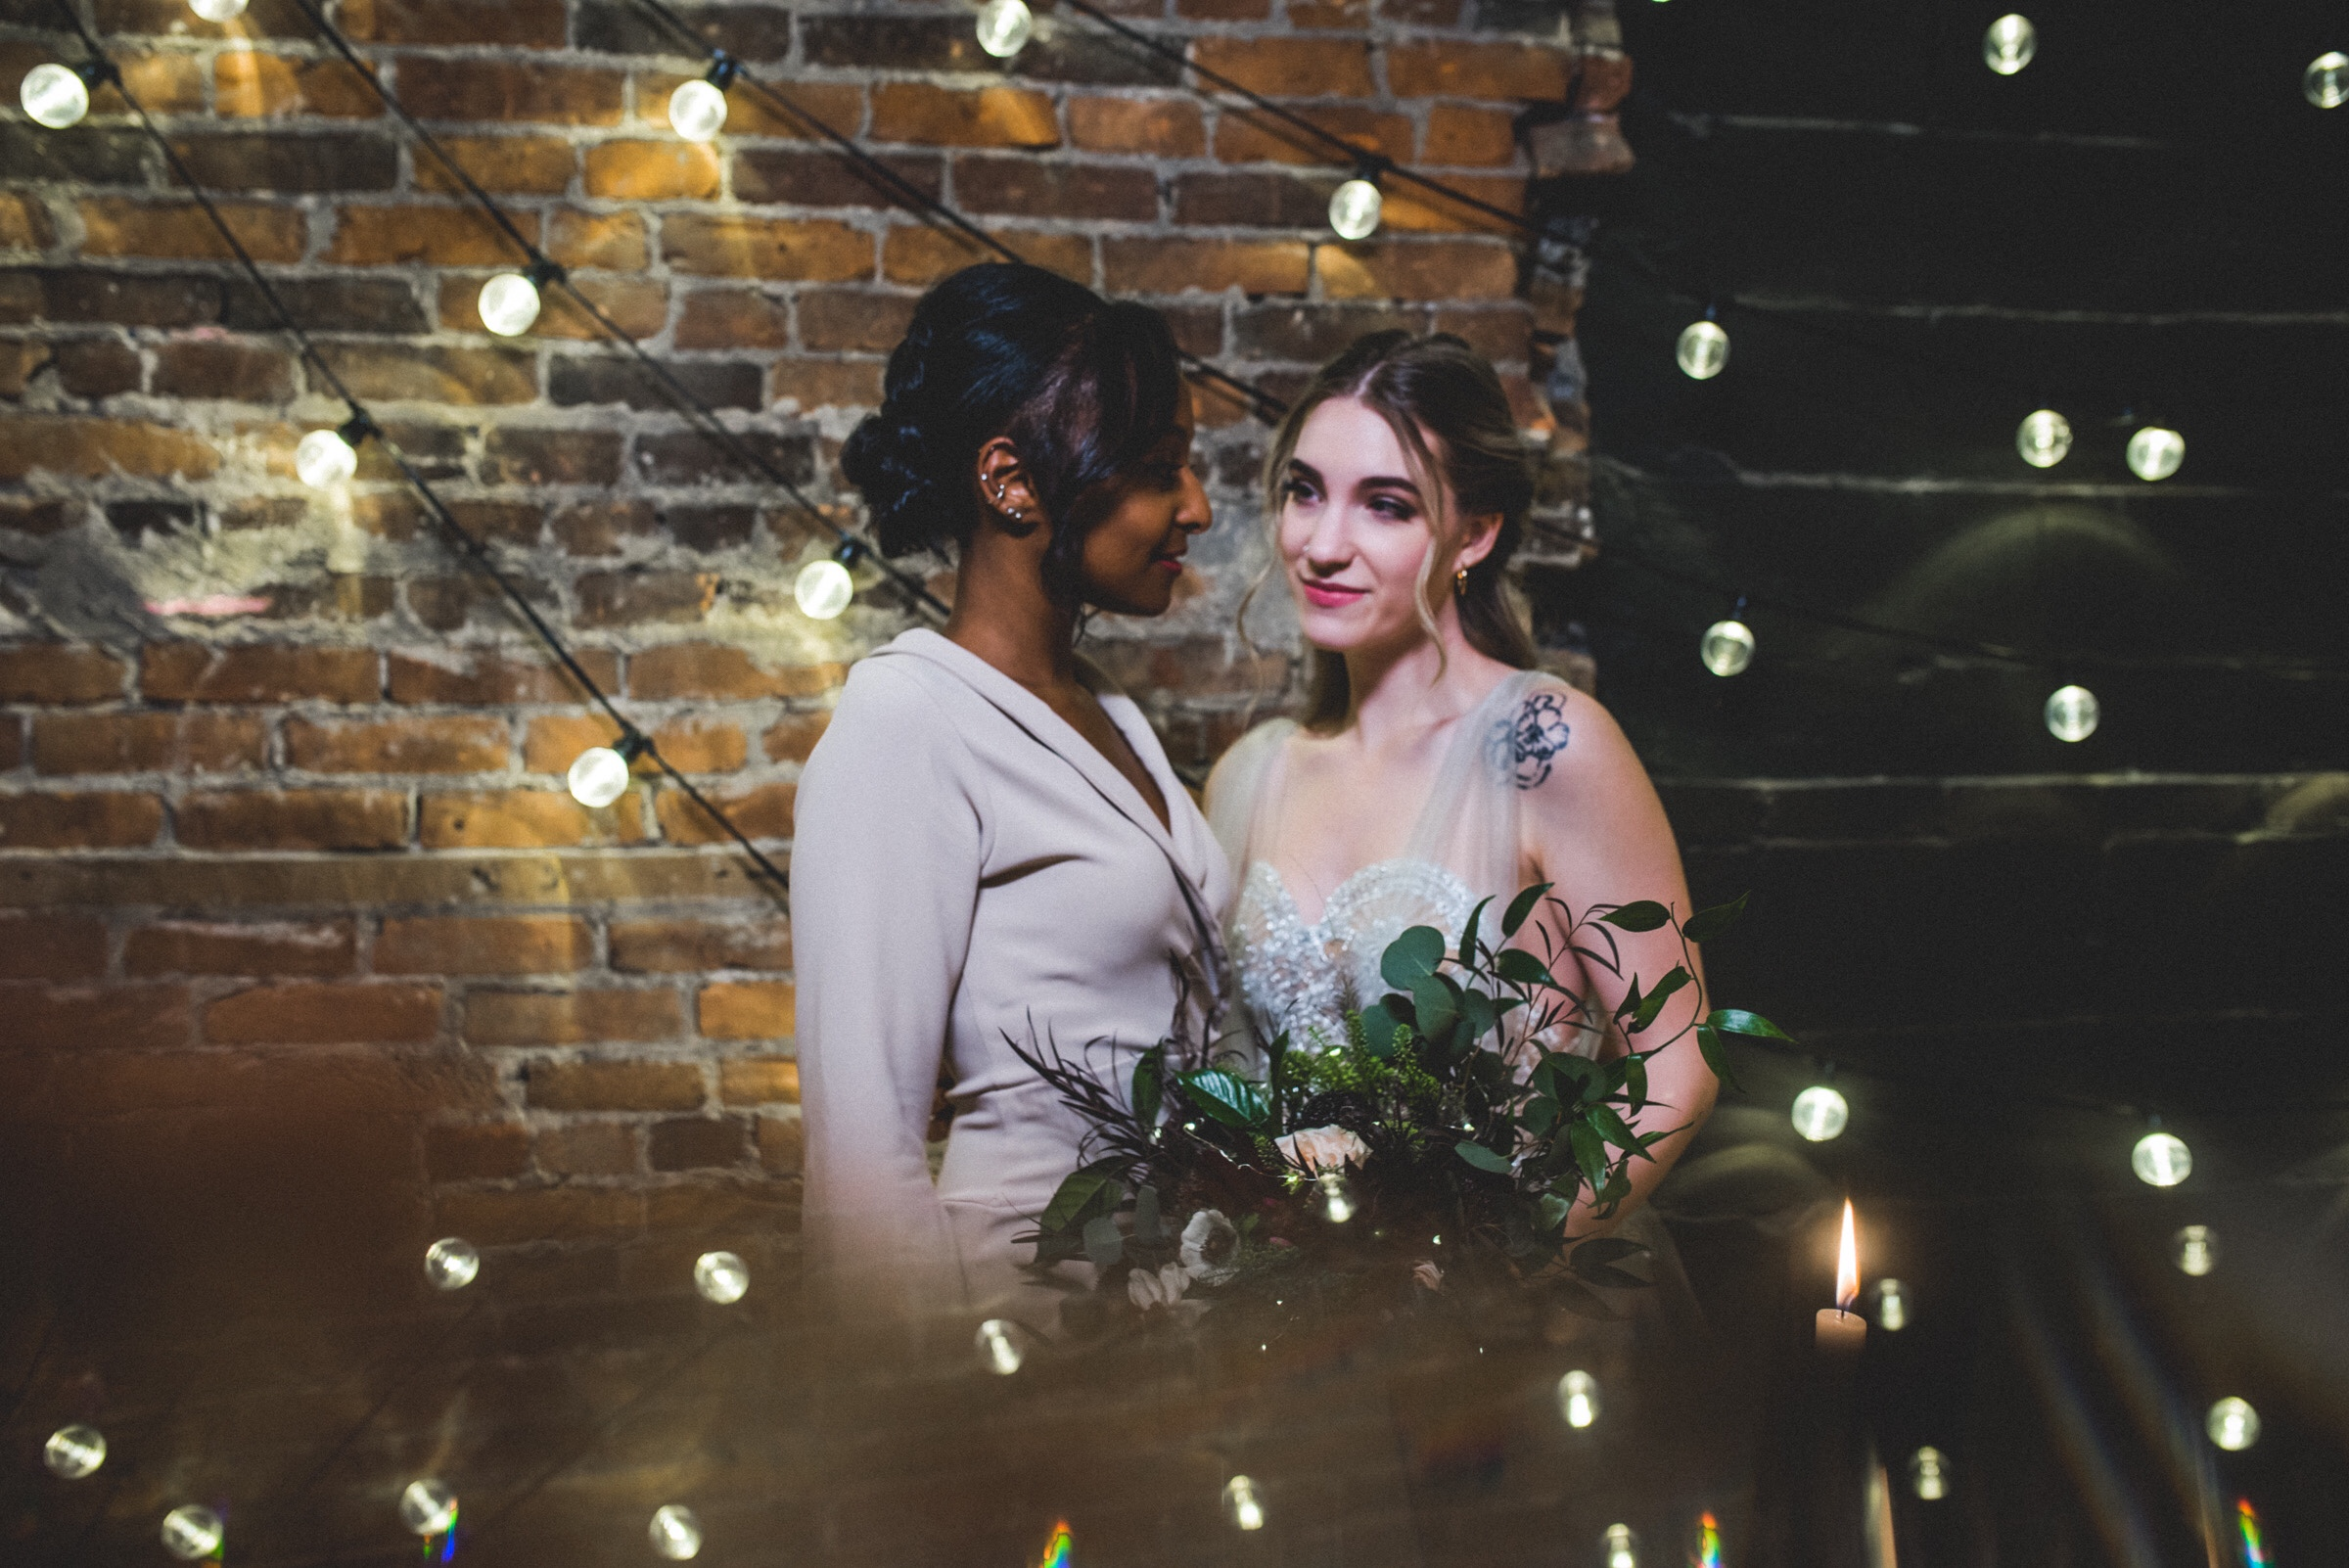 Same sex bridal couple surrounded by lights at minnesota wedding venue The loft at studio J. Portrait captured by minnesota wedding photographer Madelin Zaycheck of the Hawk and Sparrow using a prism for reflection of the lights